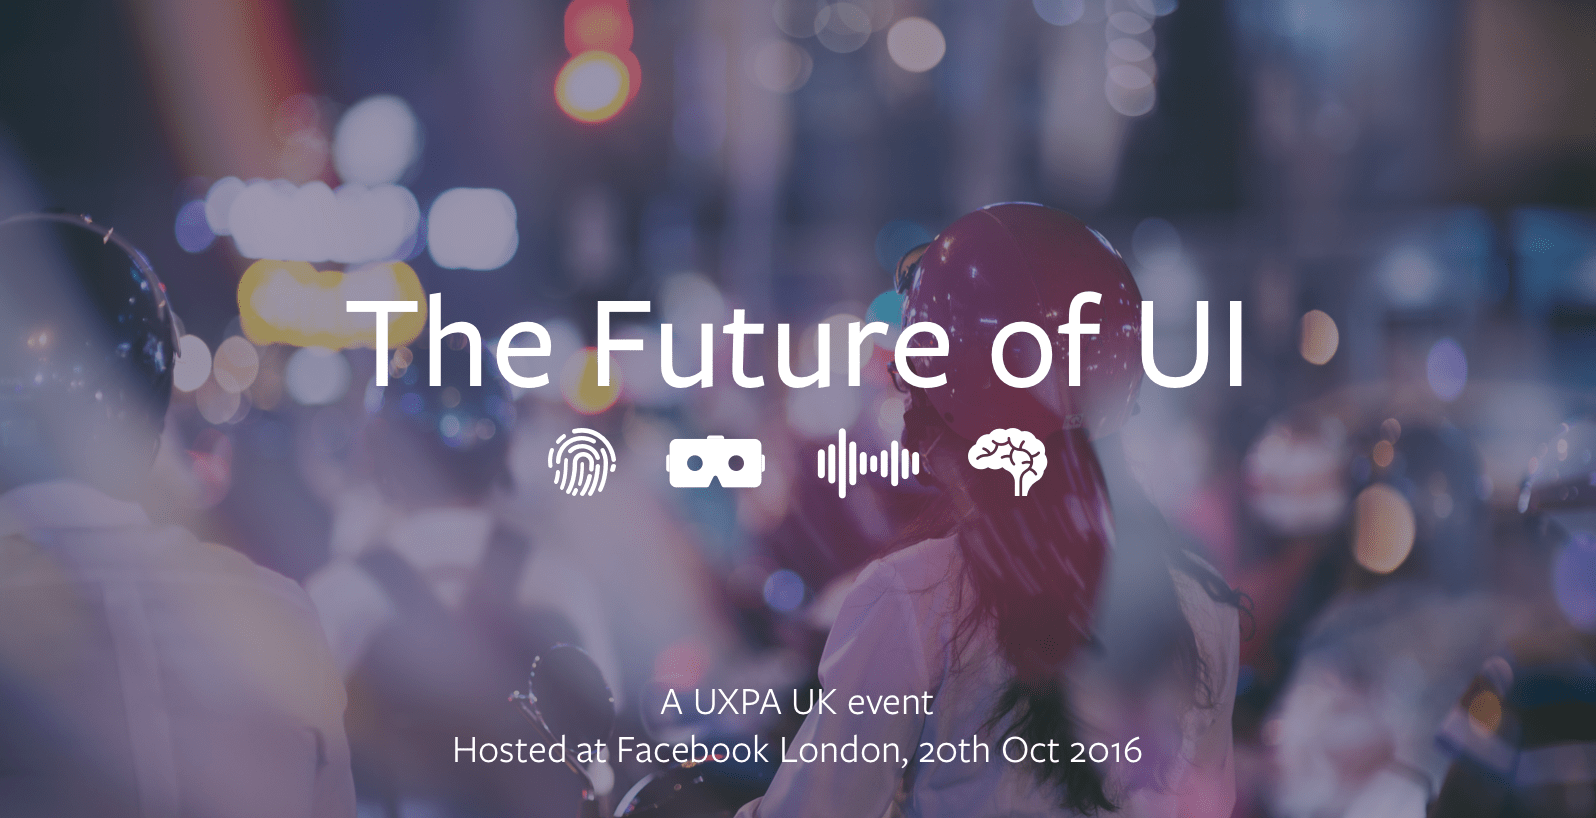 The Future of UI - a UCPA and Facebook event